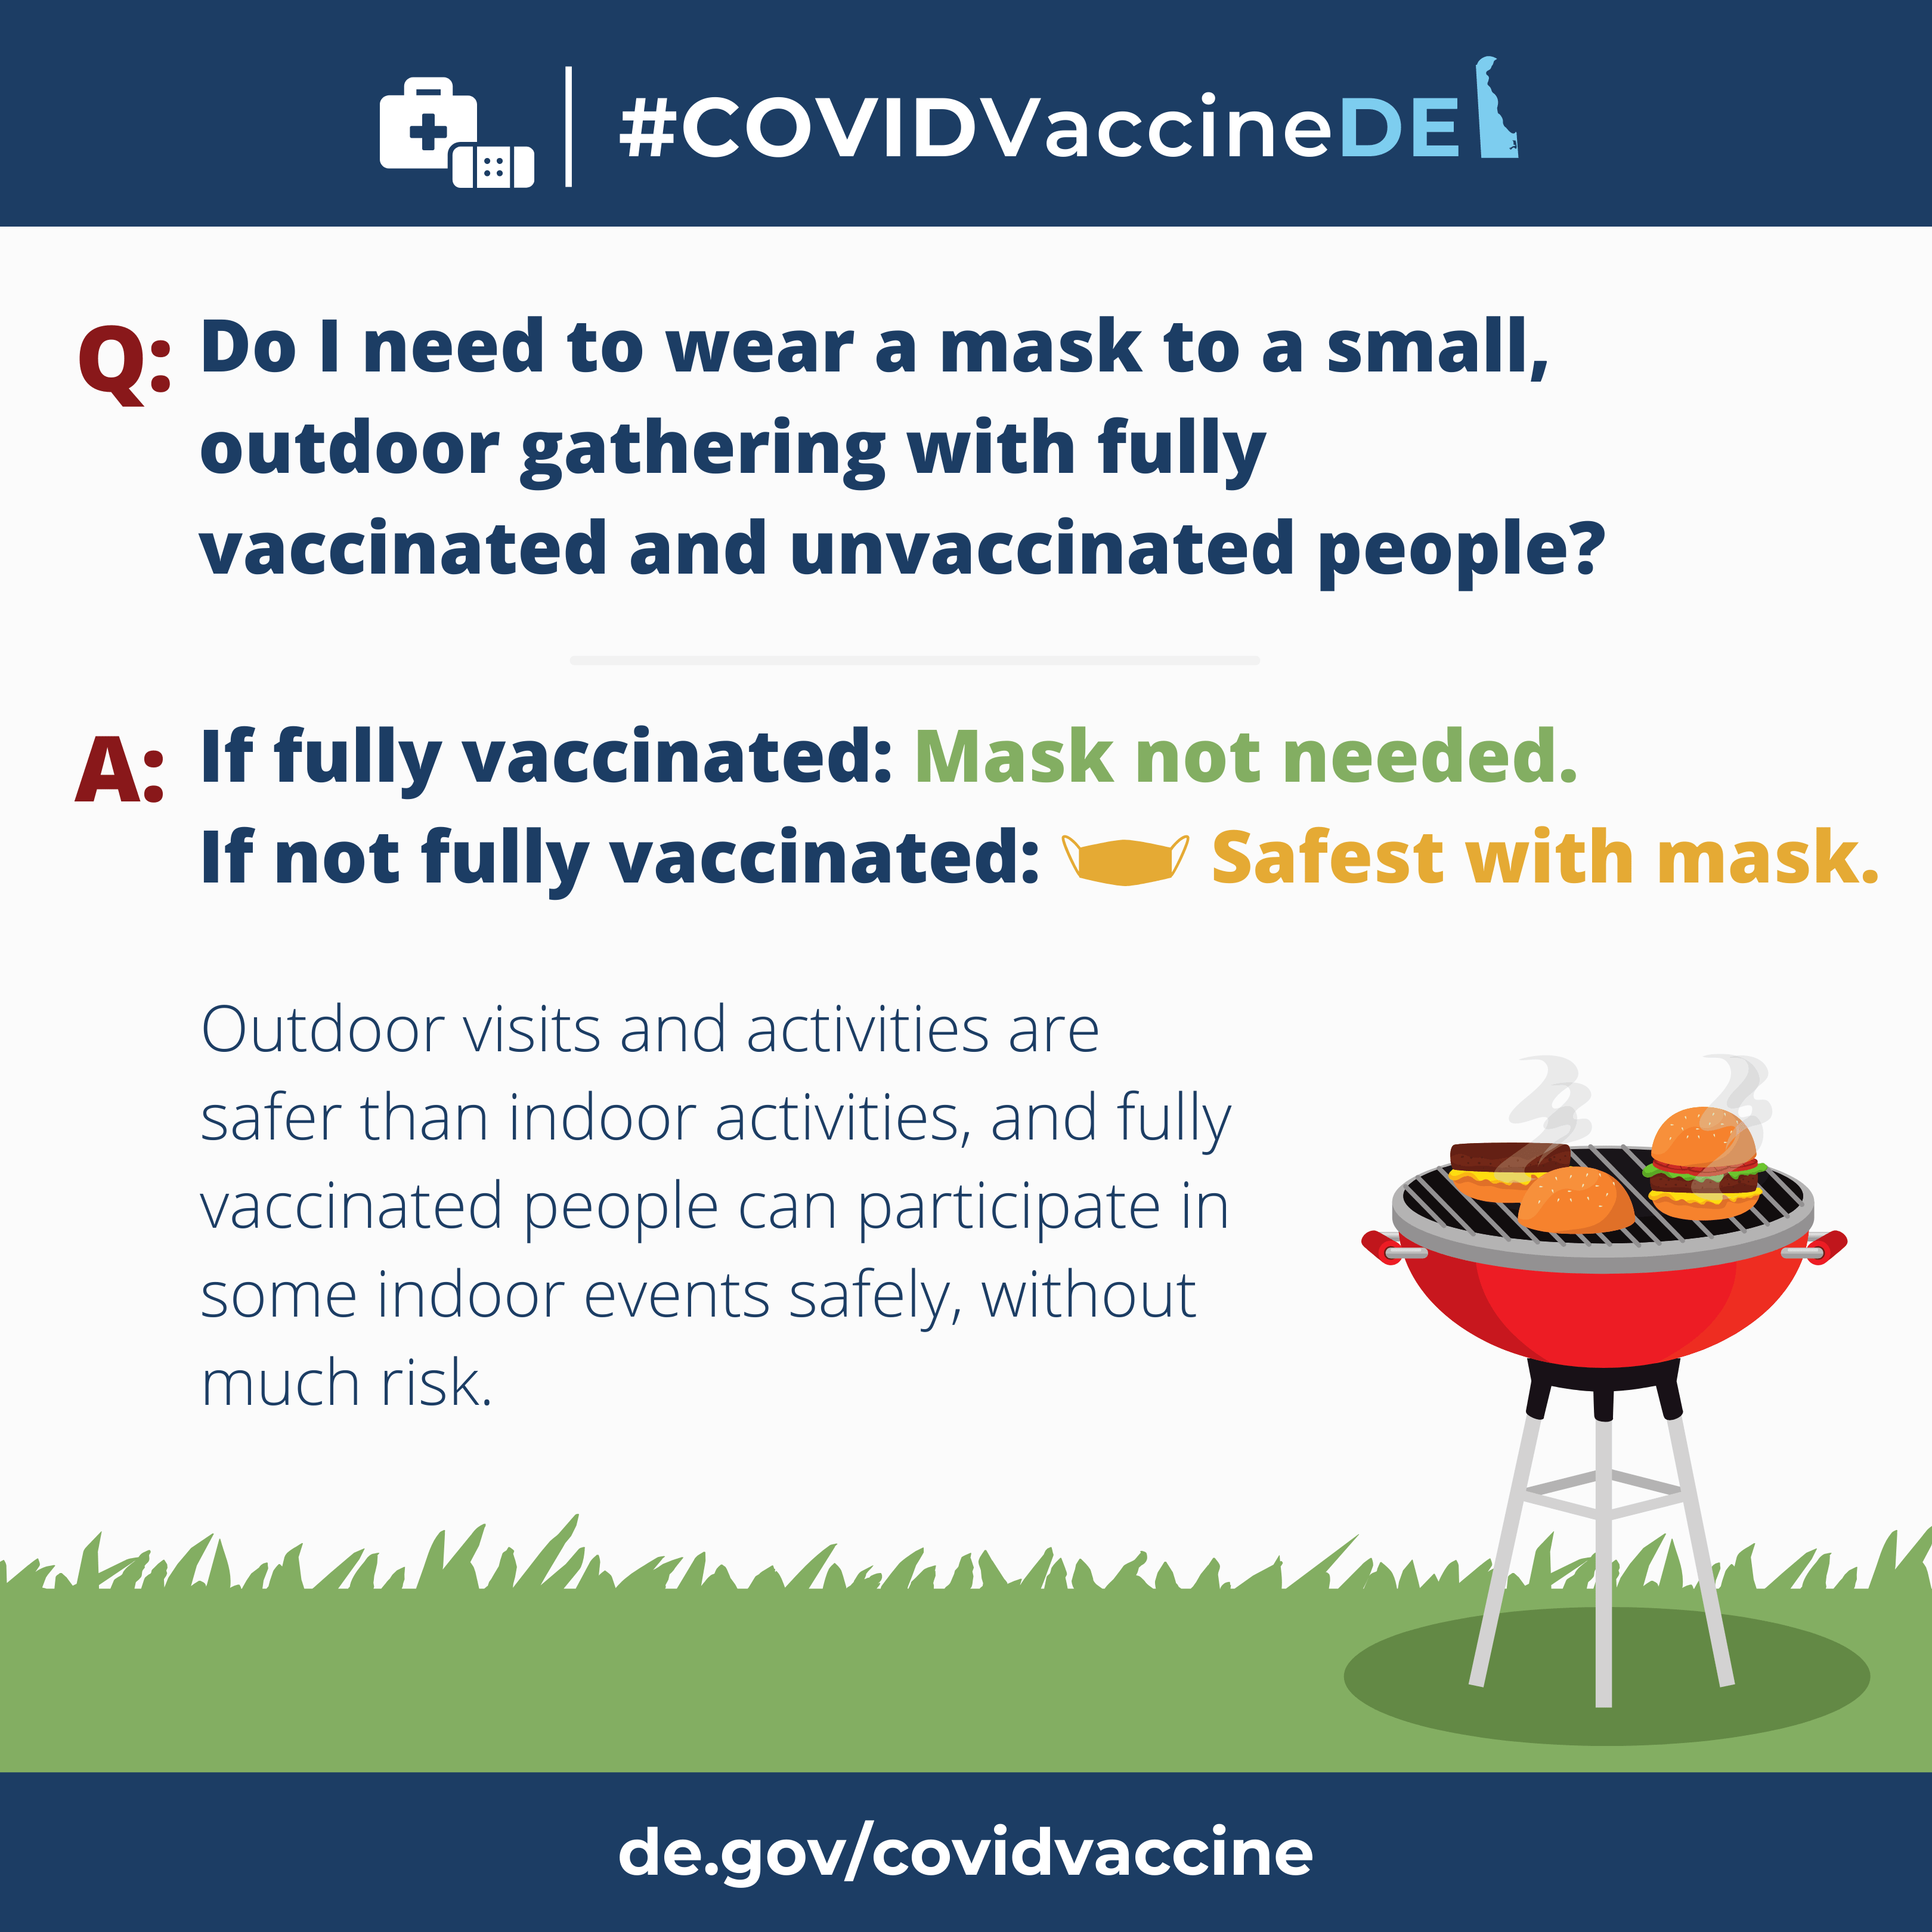 CovidVacineDE Questions and Answers series. Question: Do I need to wear a mask to a small, outdoor gathering with fully vaccinated and unvaccinated people? Answer: If fully vaccinated, mask is not needed. If not fully vaccinated, safest with a mask.